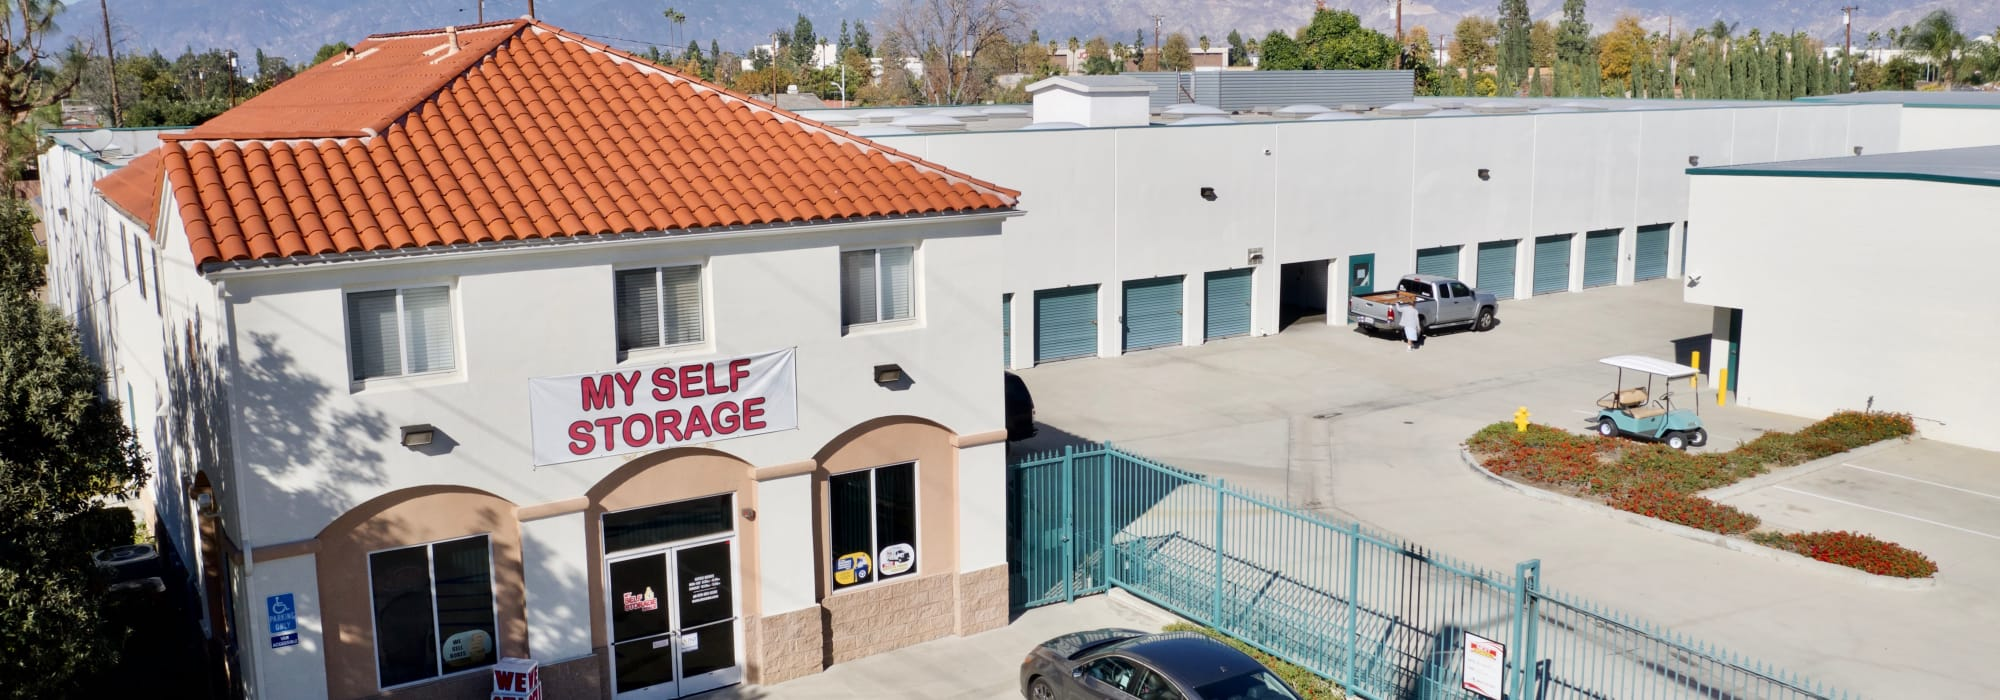 My Self Storage Space in West Covina, California